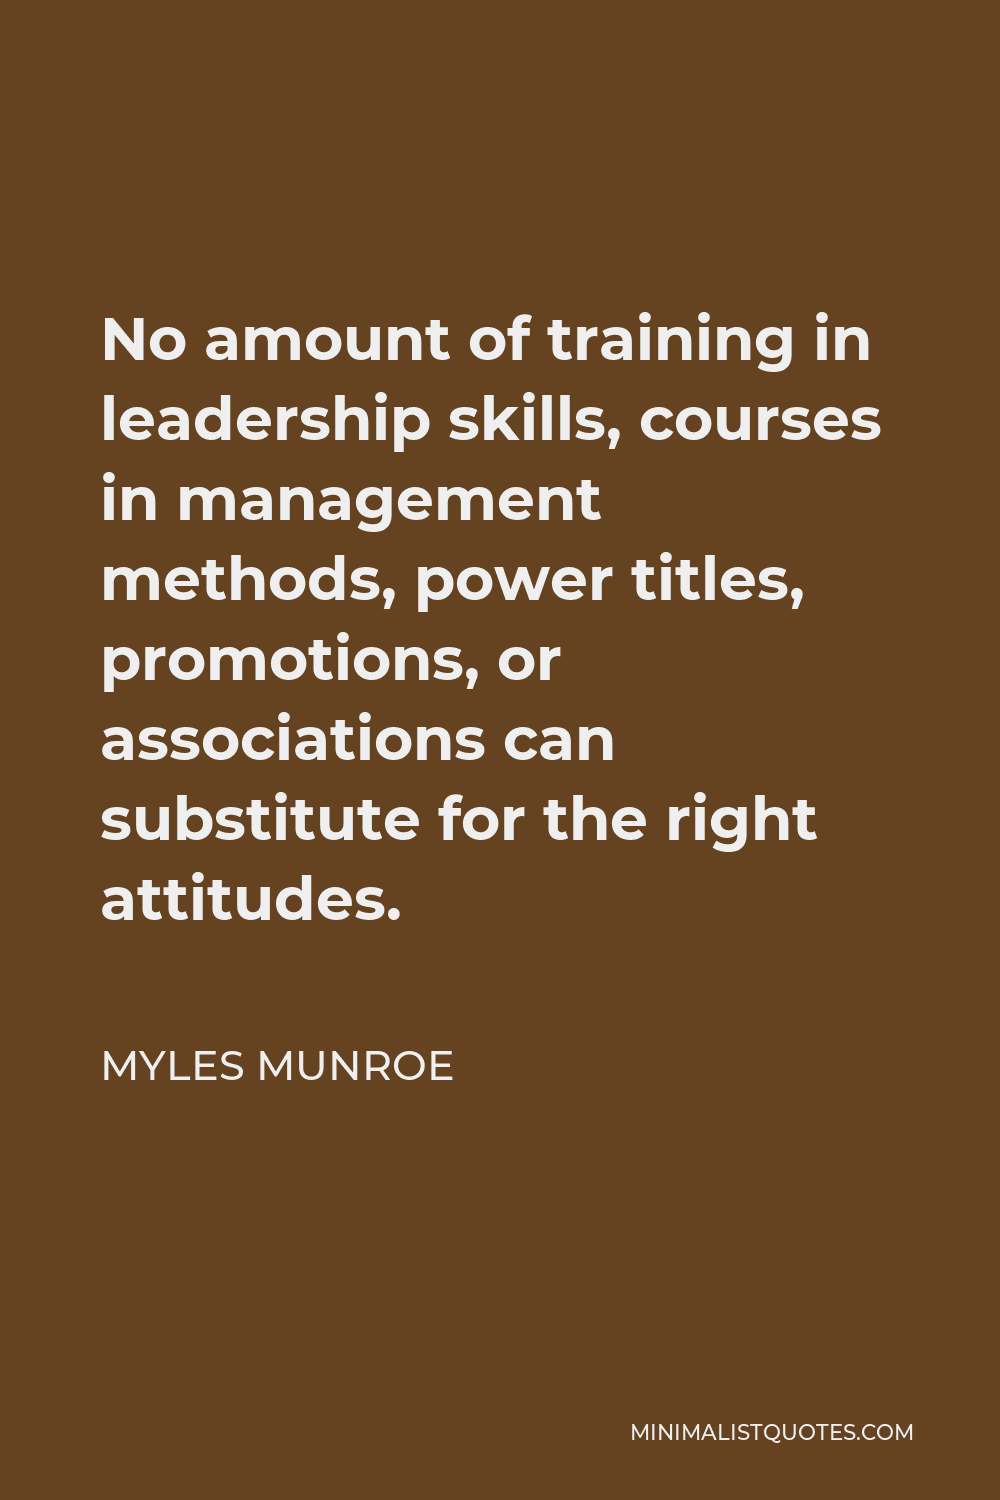 Myles Munroe Quote - No amount of training in leadership skills, courses in management methods, power titles, promotions, or associations can substitute for the right attitudes.